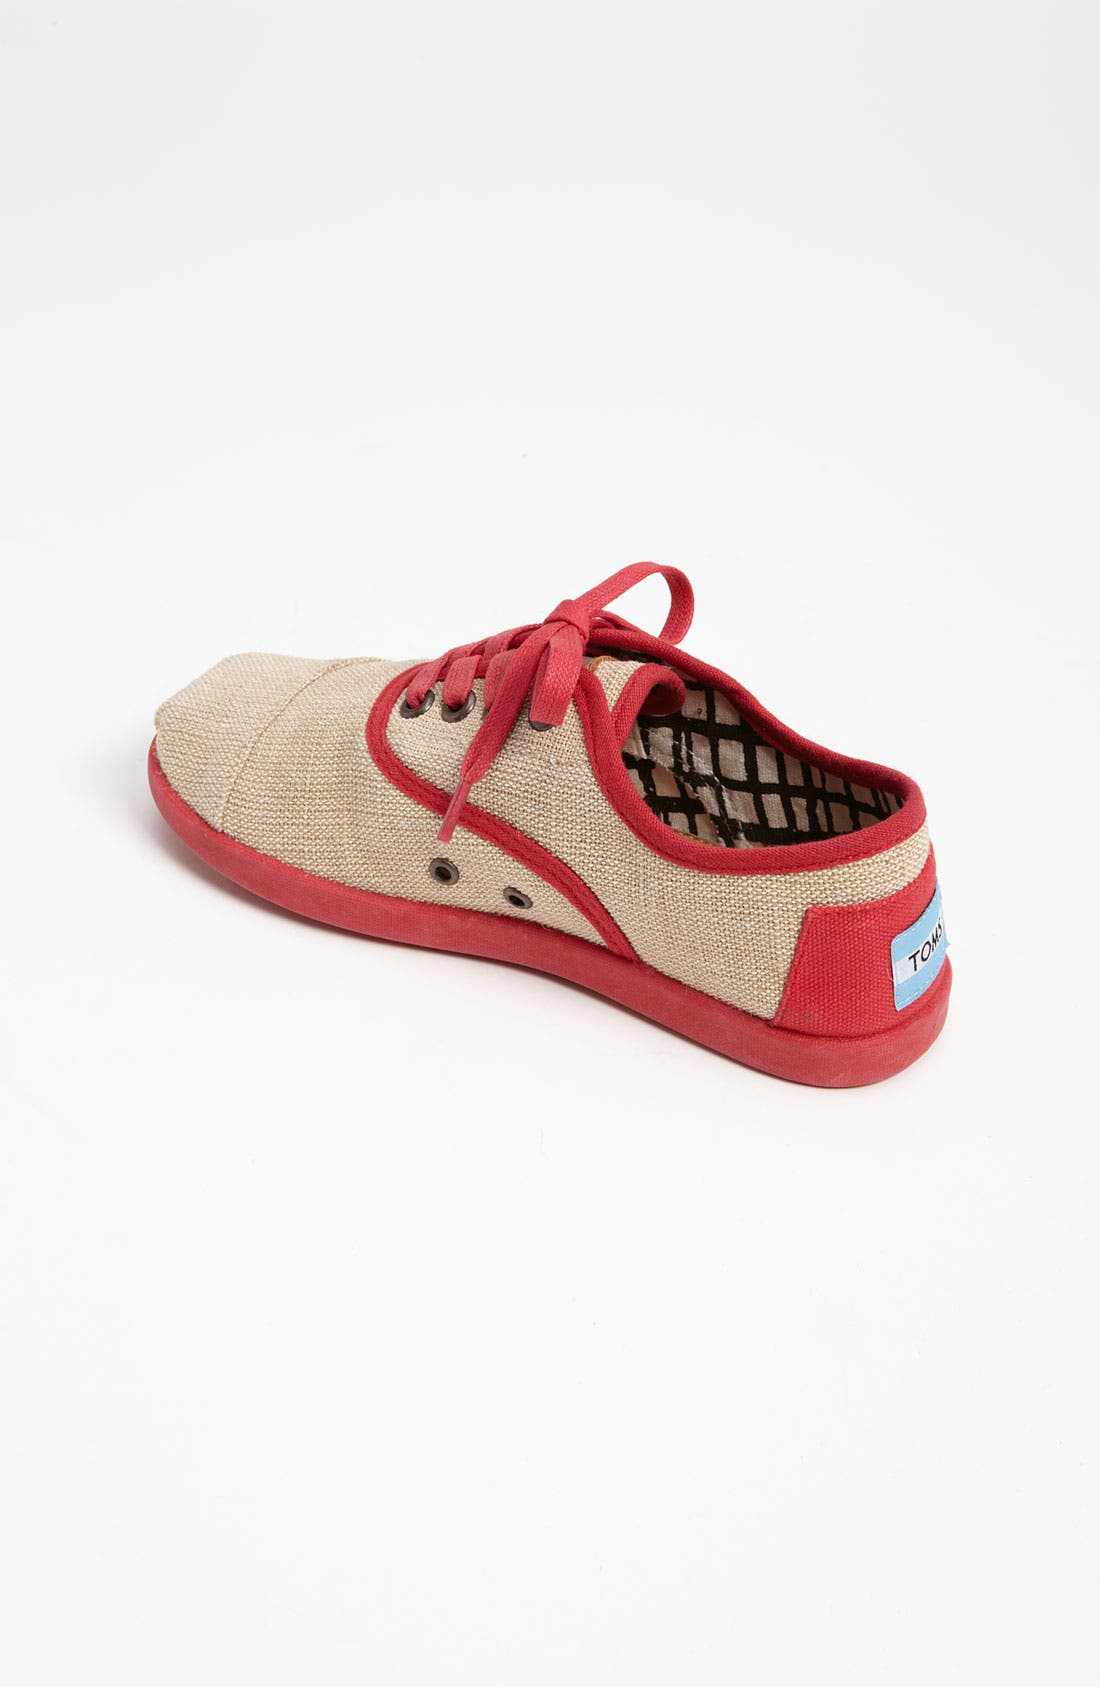 Alternate Image 2  - TOMS 'Cordones Youth - Maddox' Burlap Sneaker (Toddler, Little Kid & Big Kid)